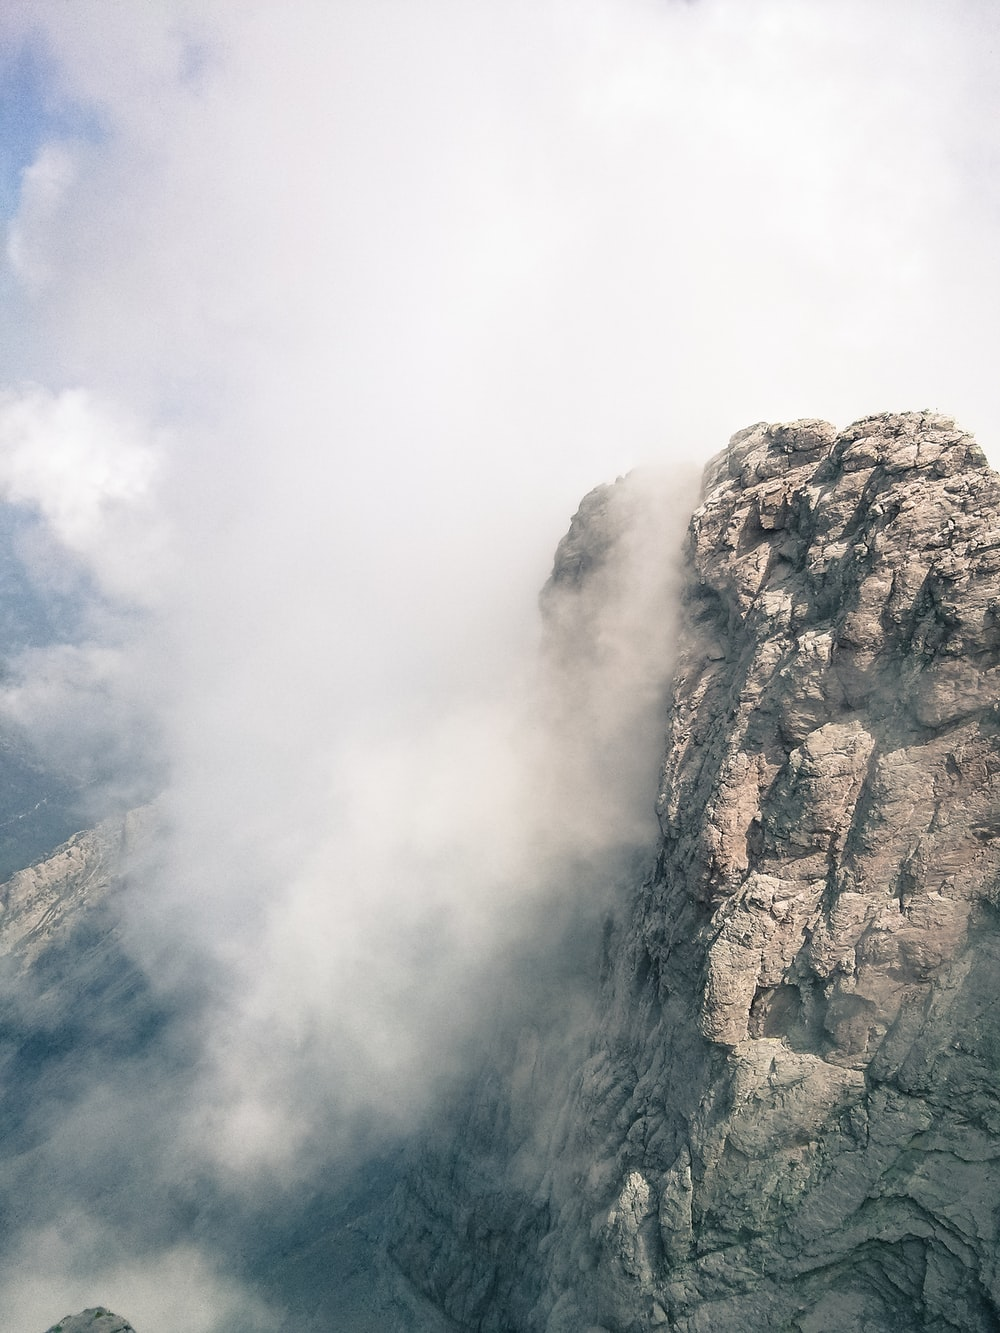 aerial view of mountains and fogs